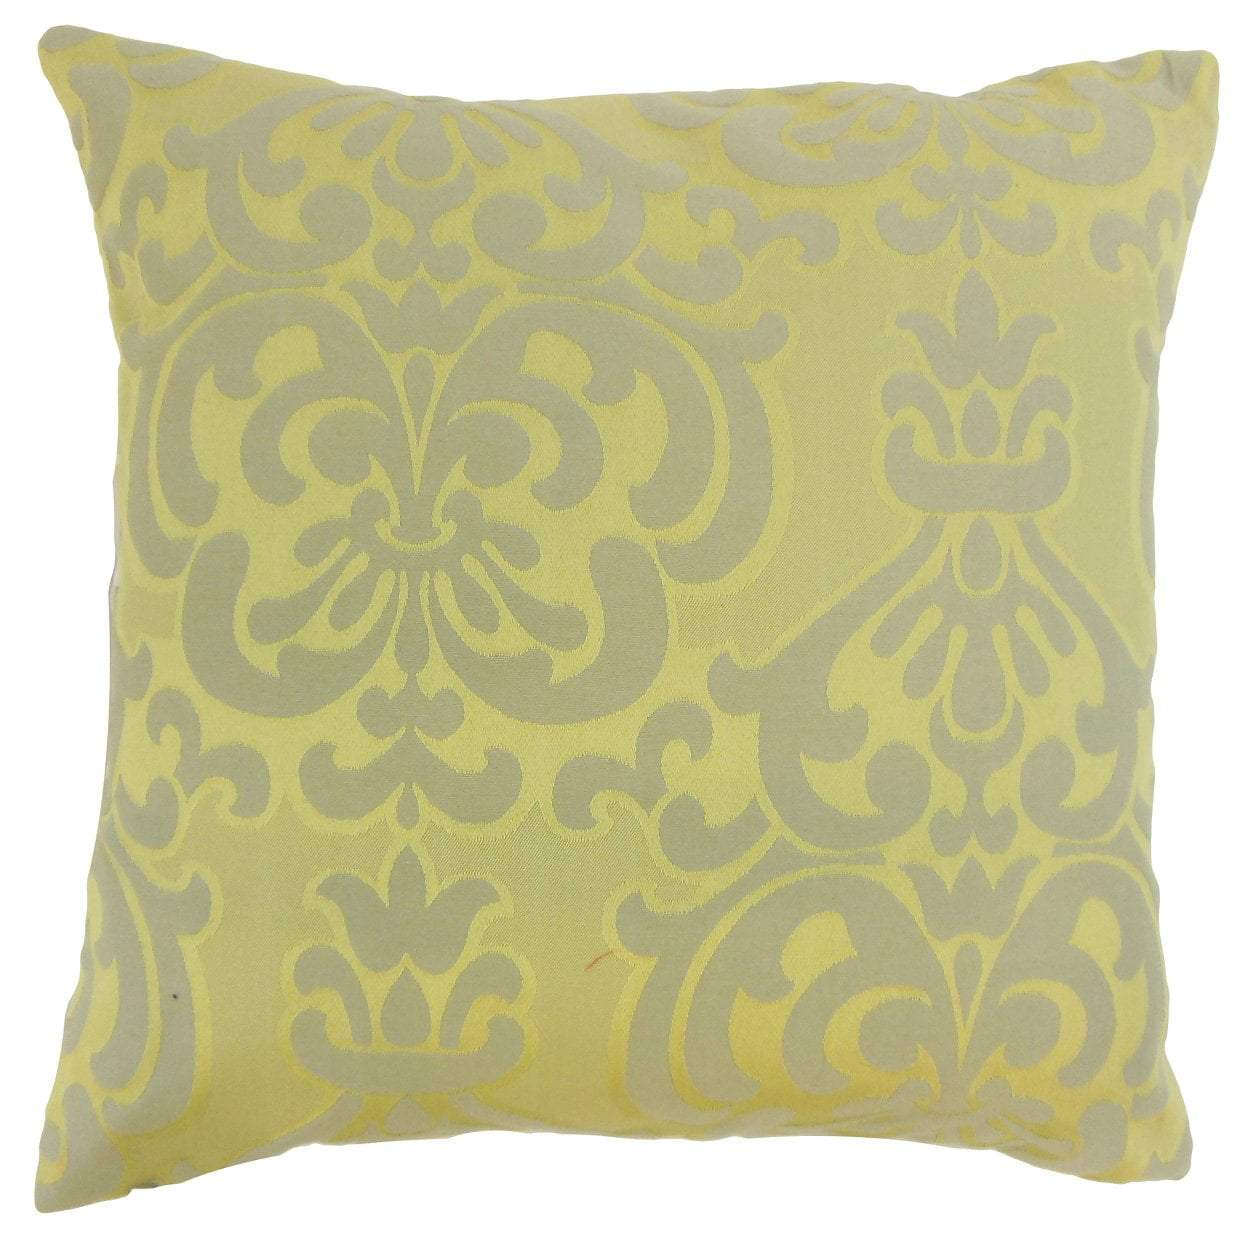 Green Cotton Damask Traditional Throw Pillow Cover